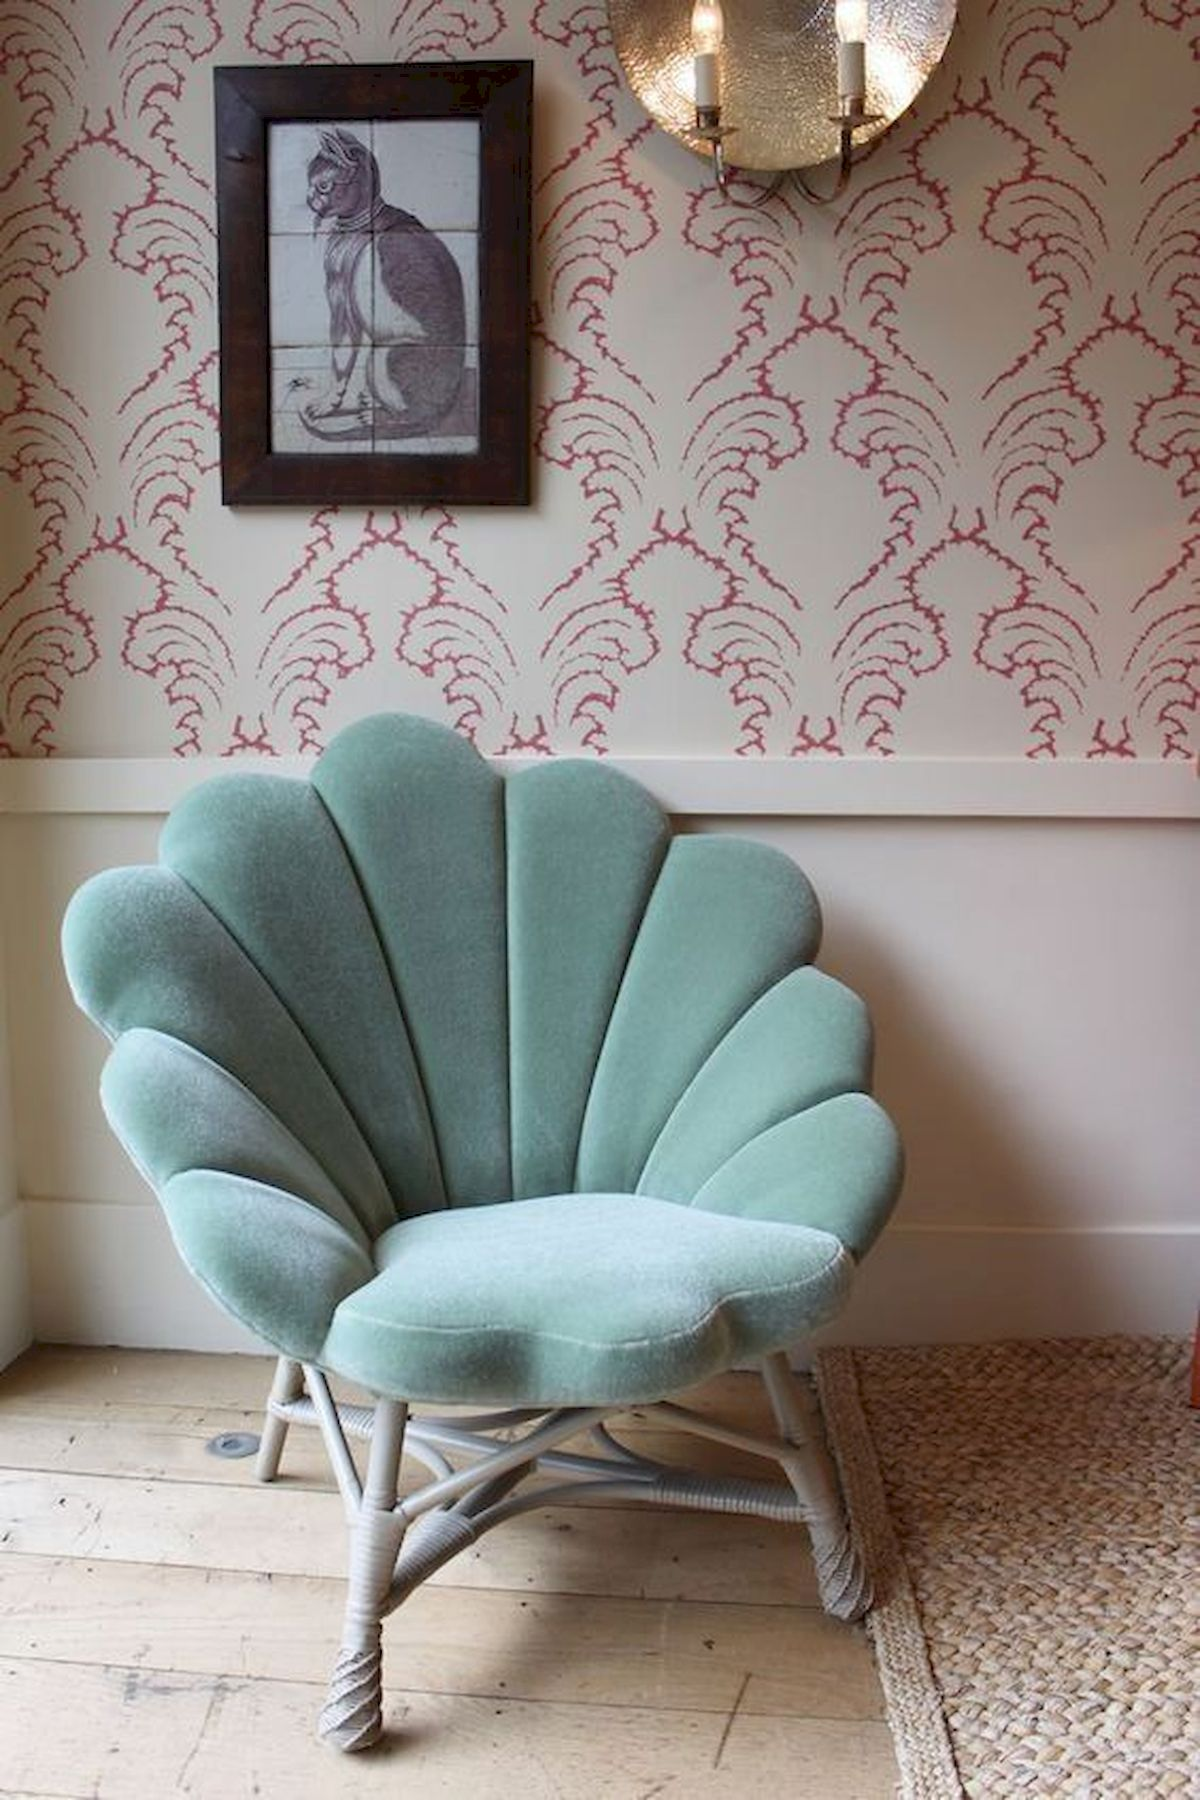 50 DIY Relaxing Chairs Design Ideas That Will Make Your Home Look Great (44)